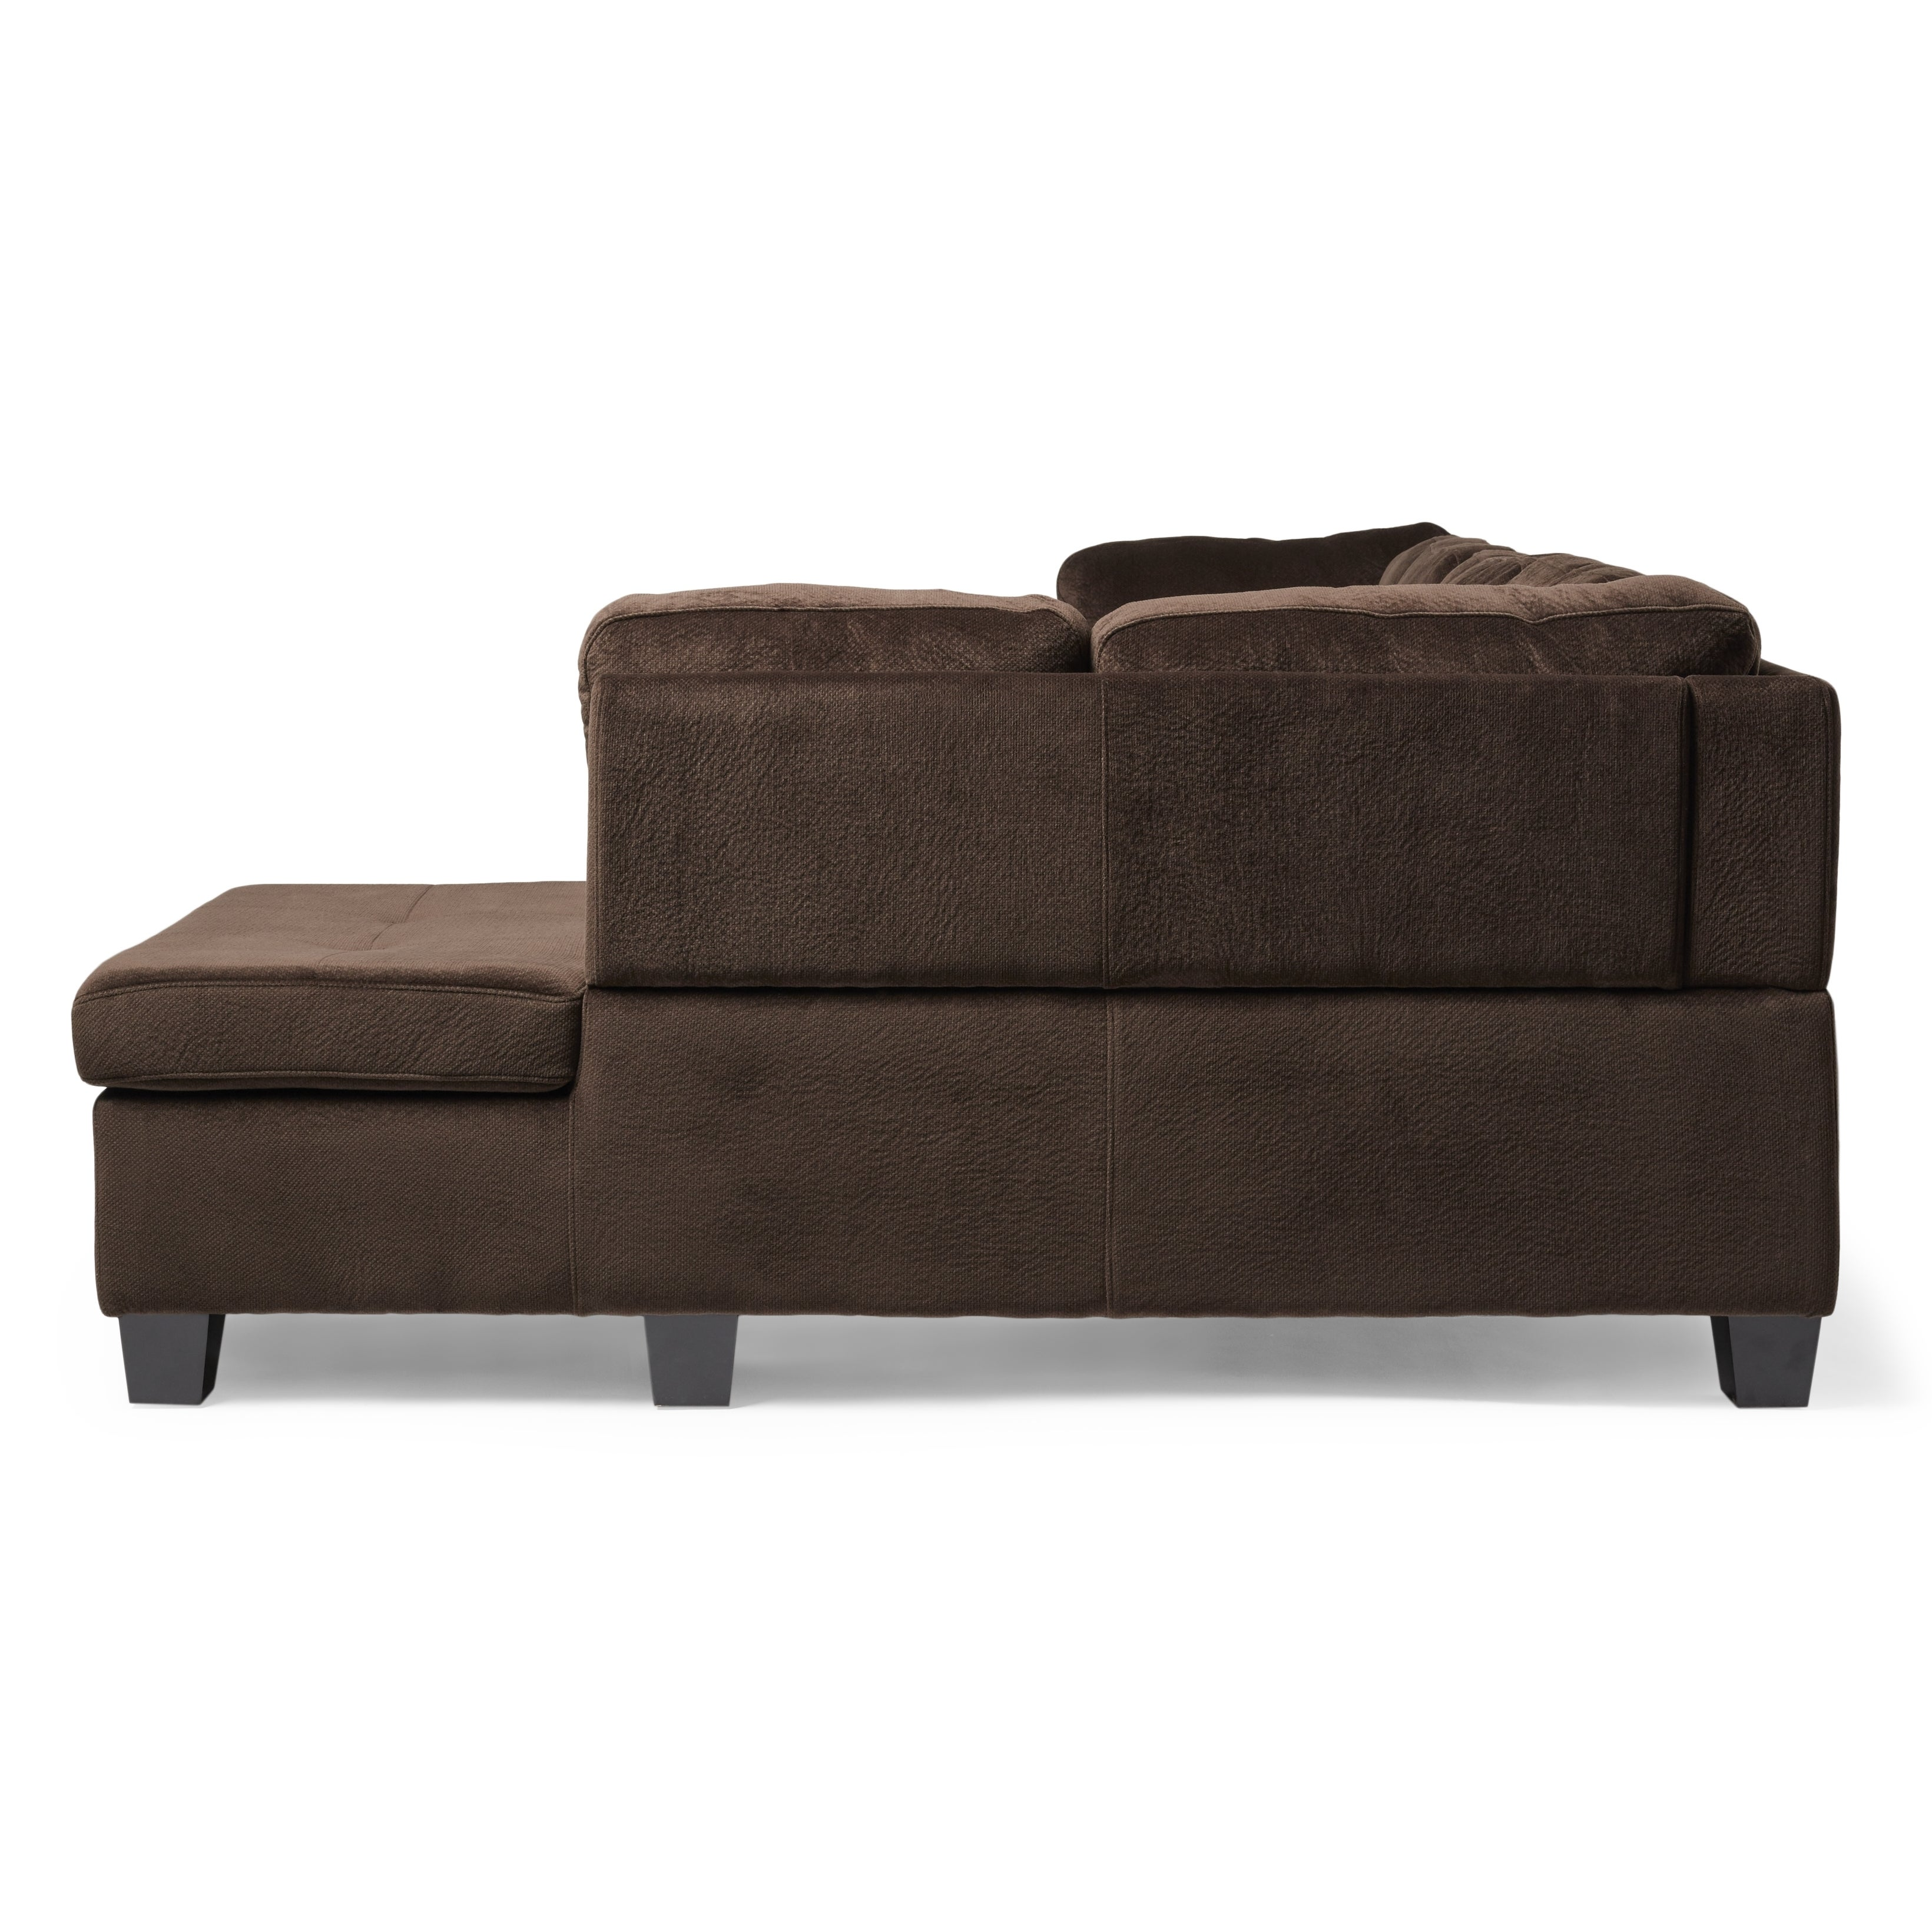 anissa of sofa couches and luxury gallery fabric with sectional best chaise sofas